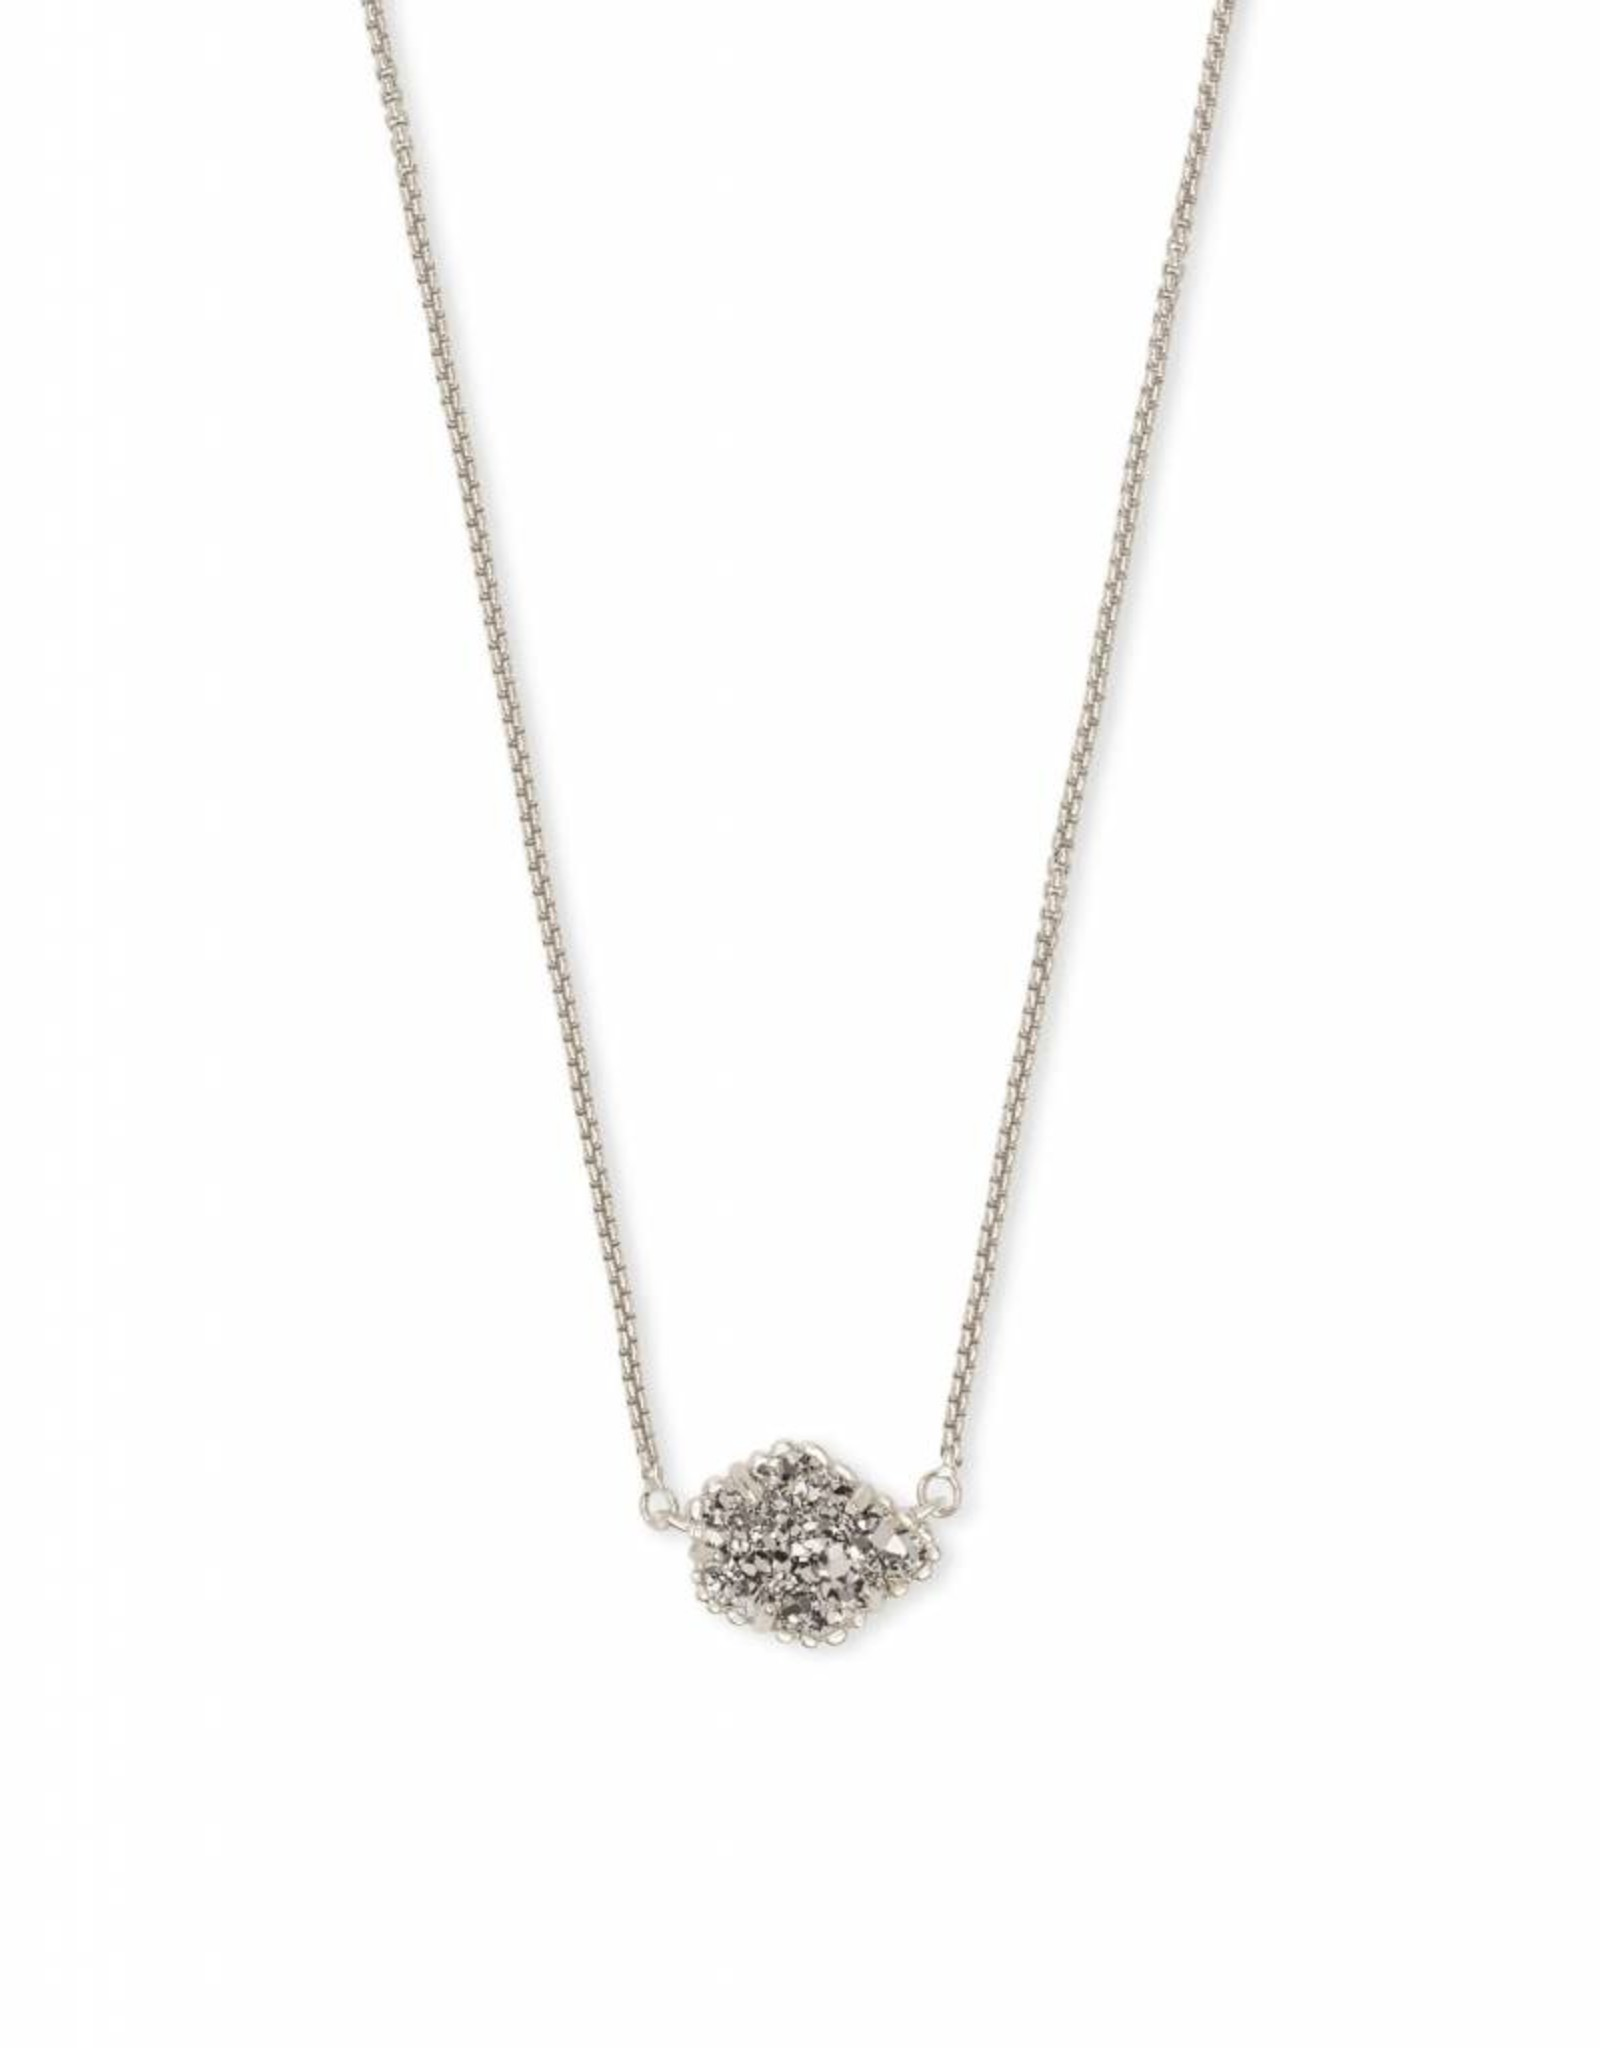 Kendra Scott Kendra Scott Tess Necklace- Rhodium